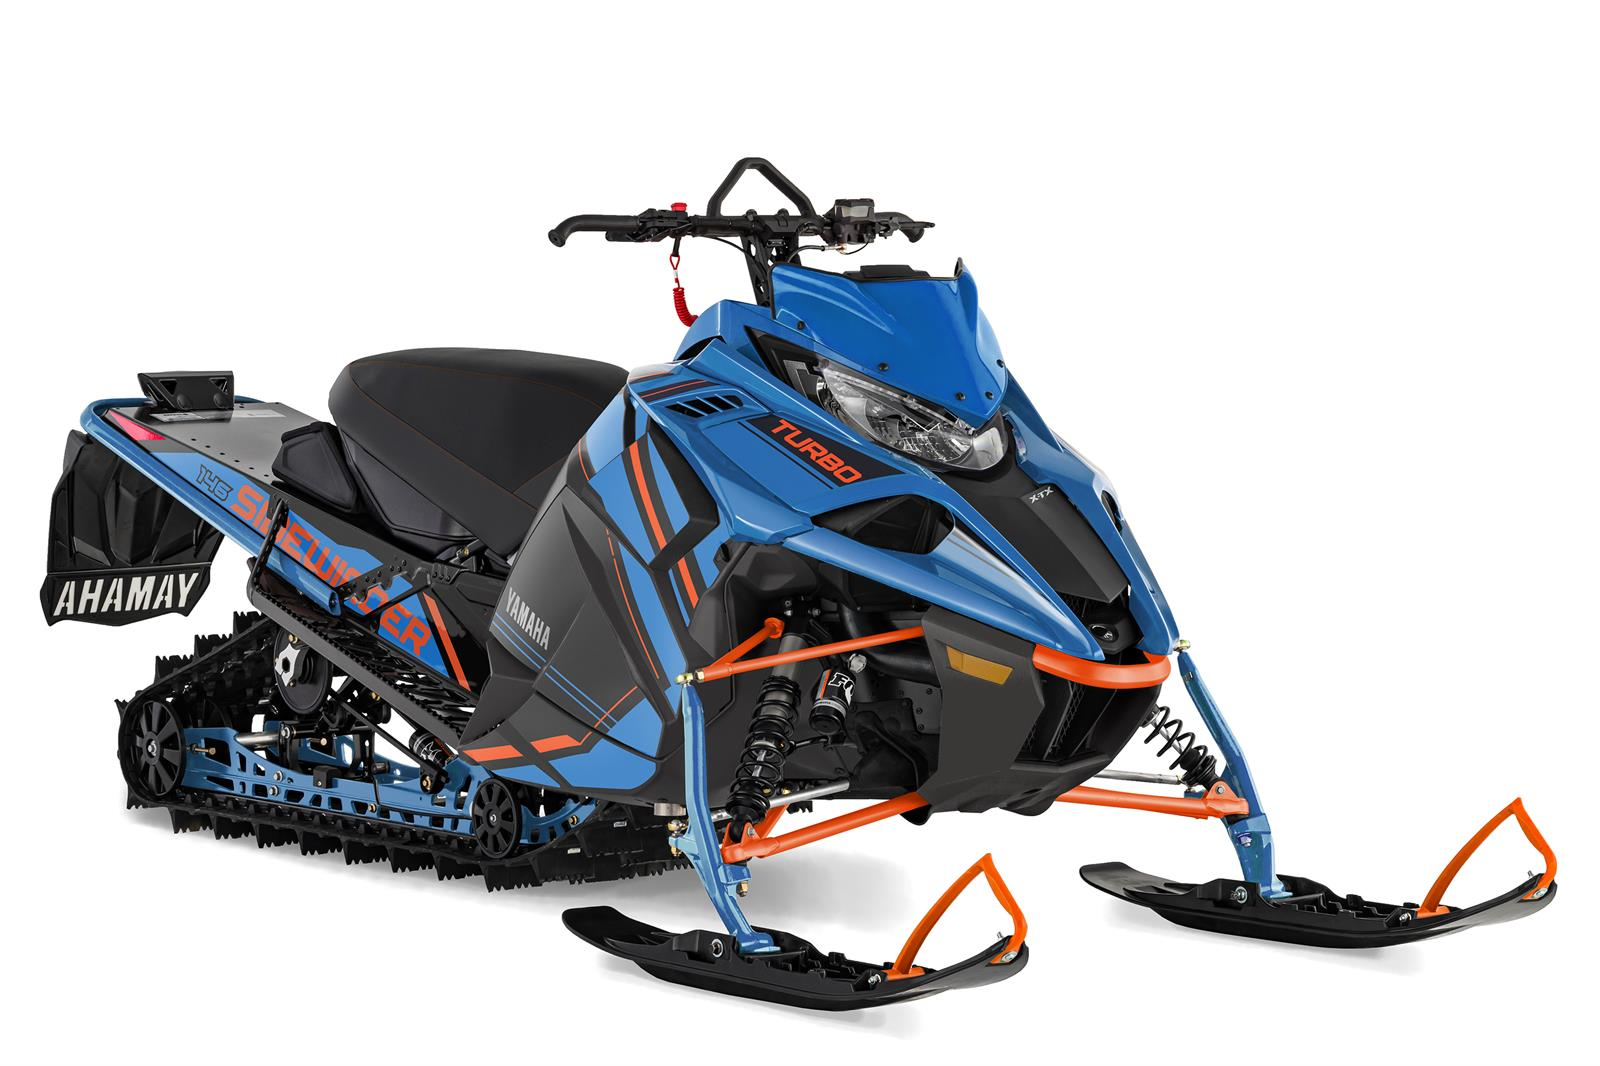 2022 Yamaha Sidewinder X-TX SE 146 in Galeton, Pennsylvania - Photo 2